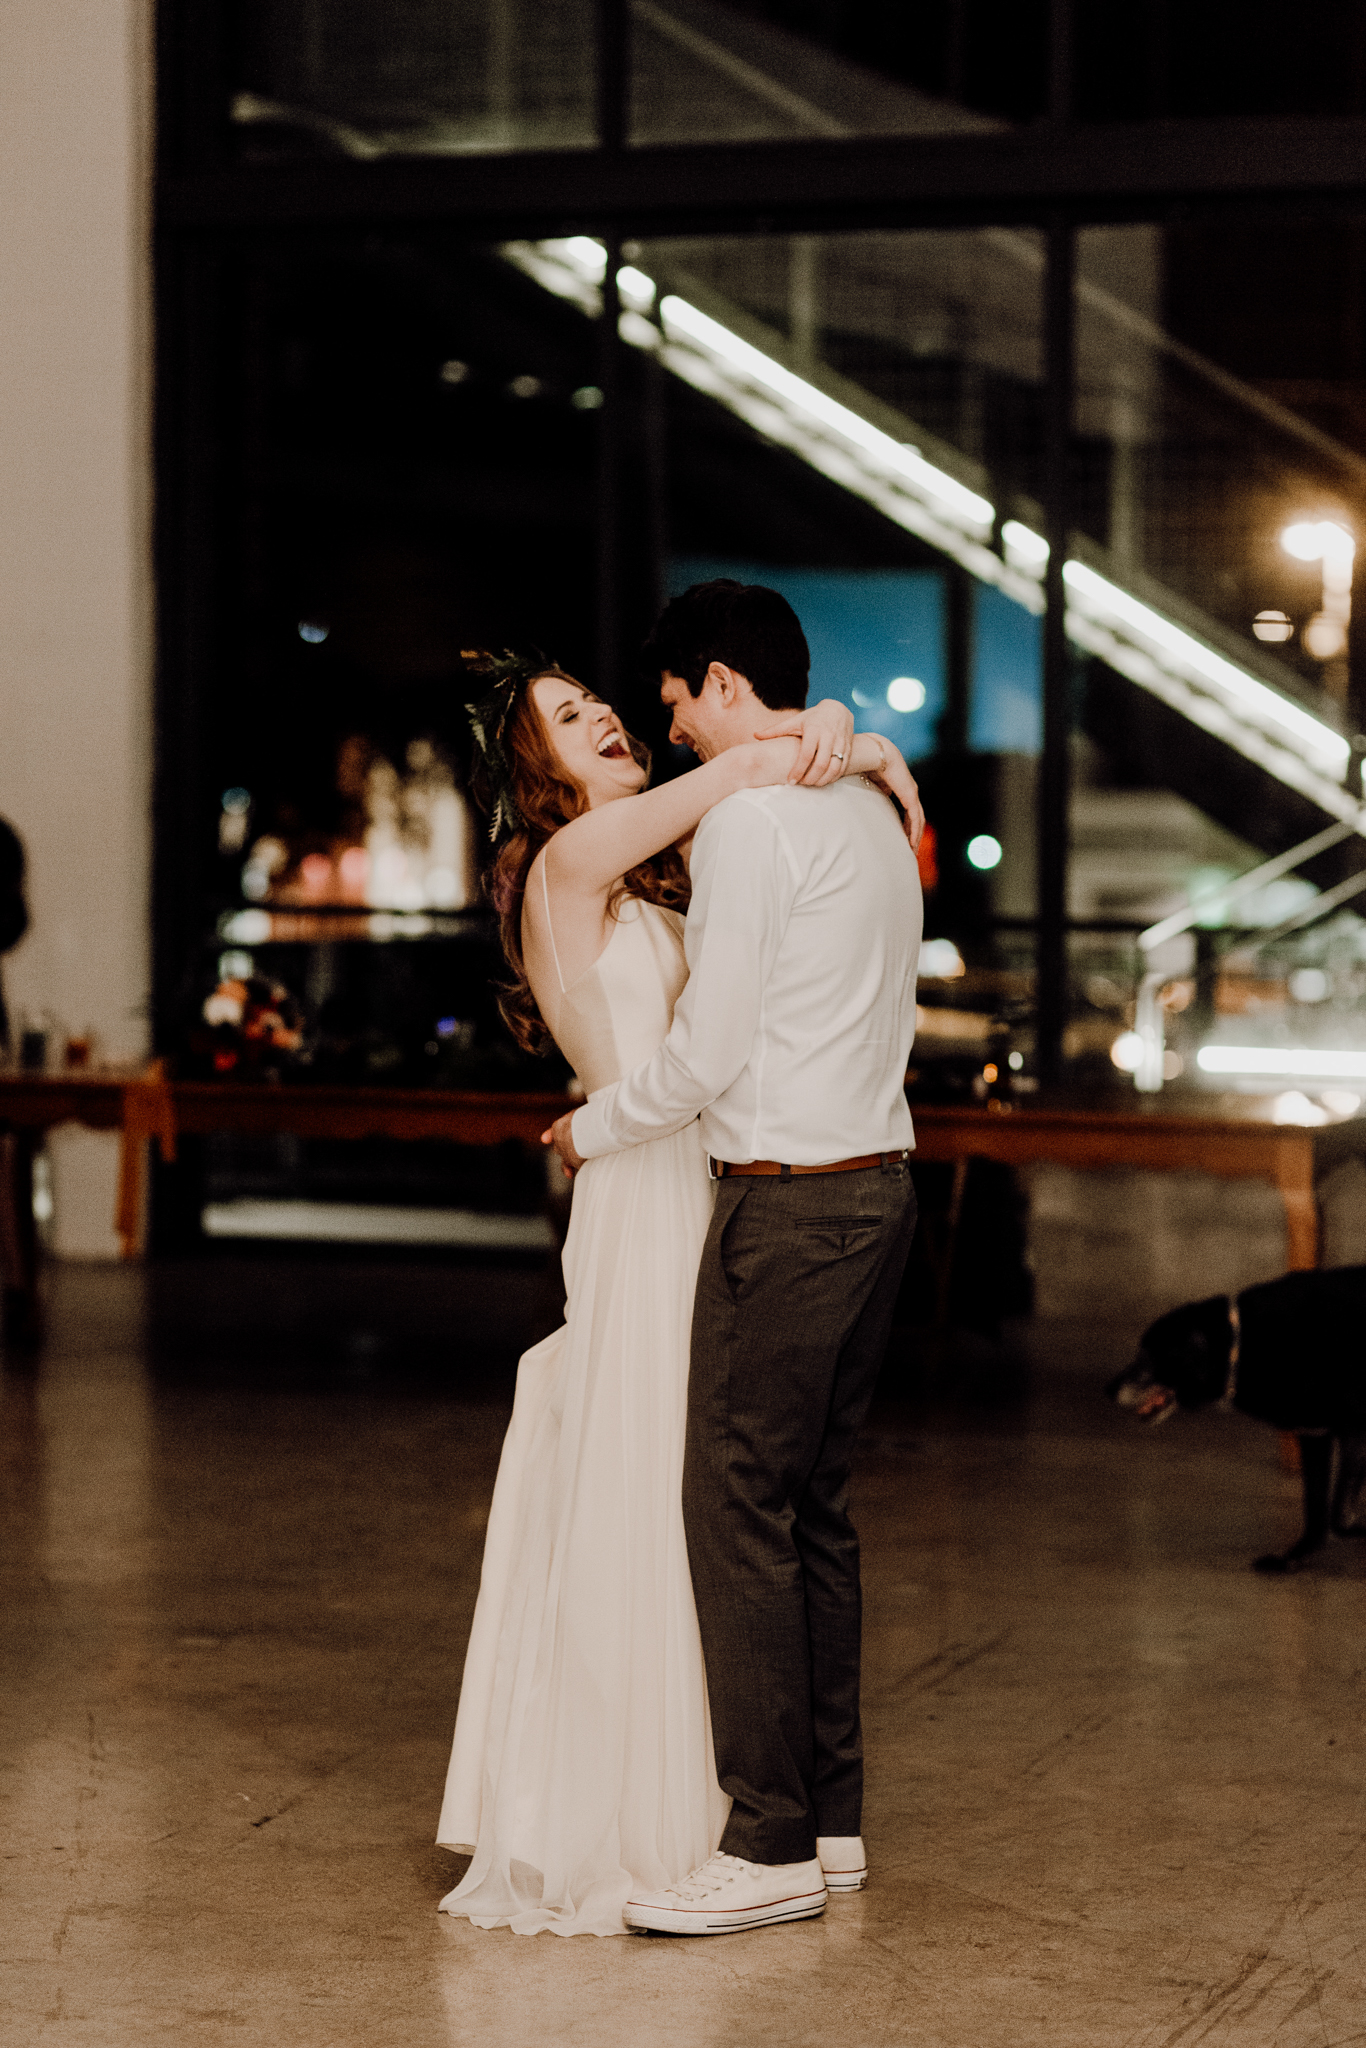 Houston Wedding Photographer-Austin Texas Sekrit Theater Wedding- Houston Wedding Photographer -Kristen Giles Photography-94.jpg